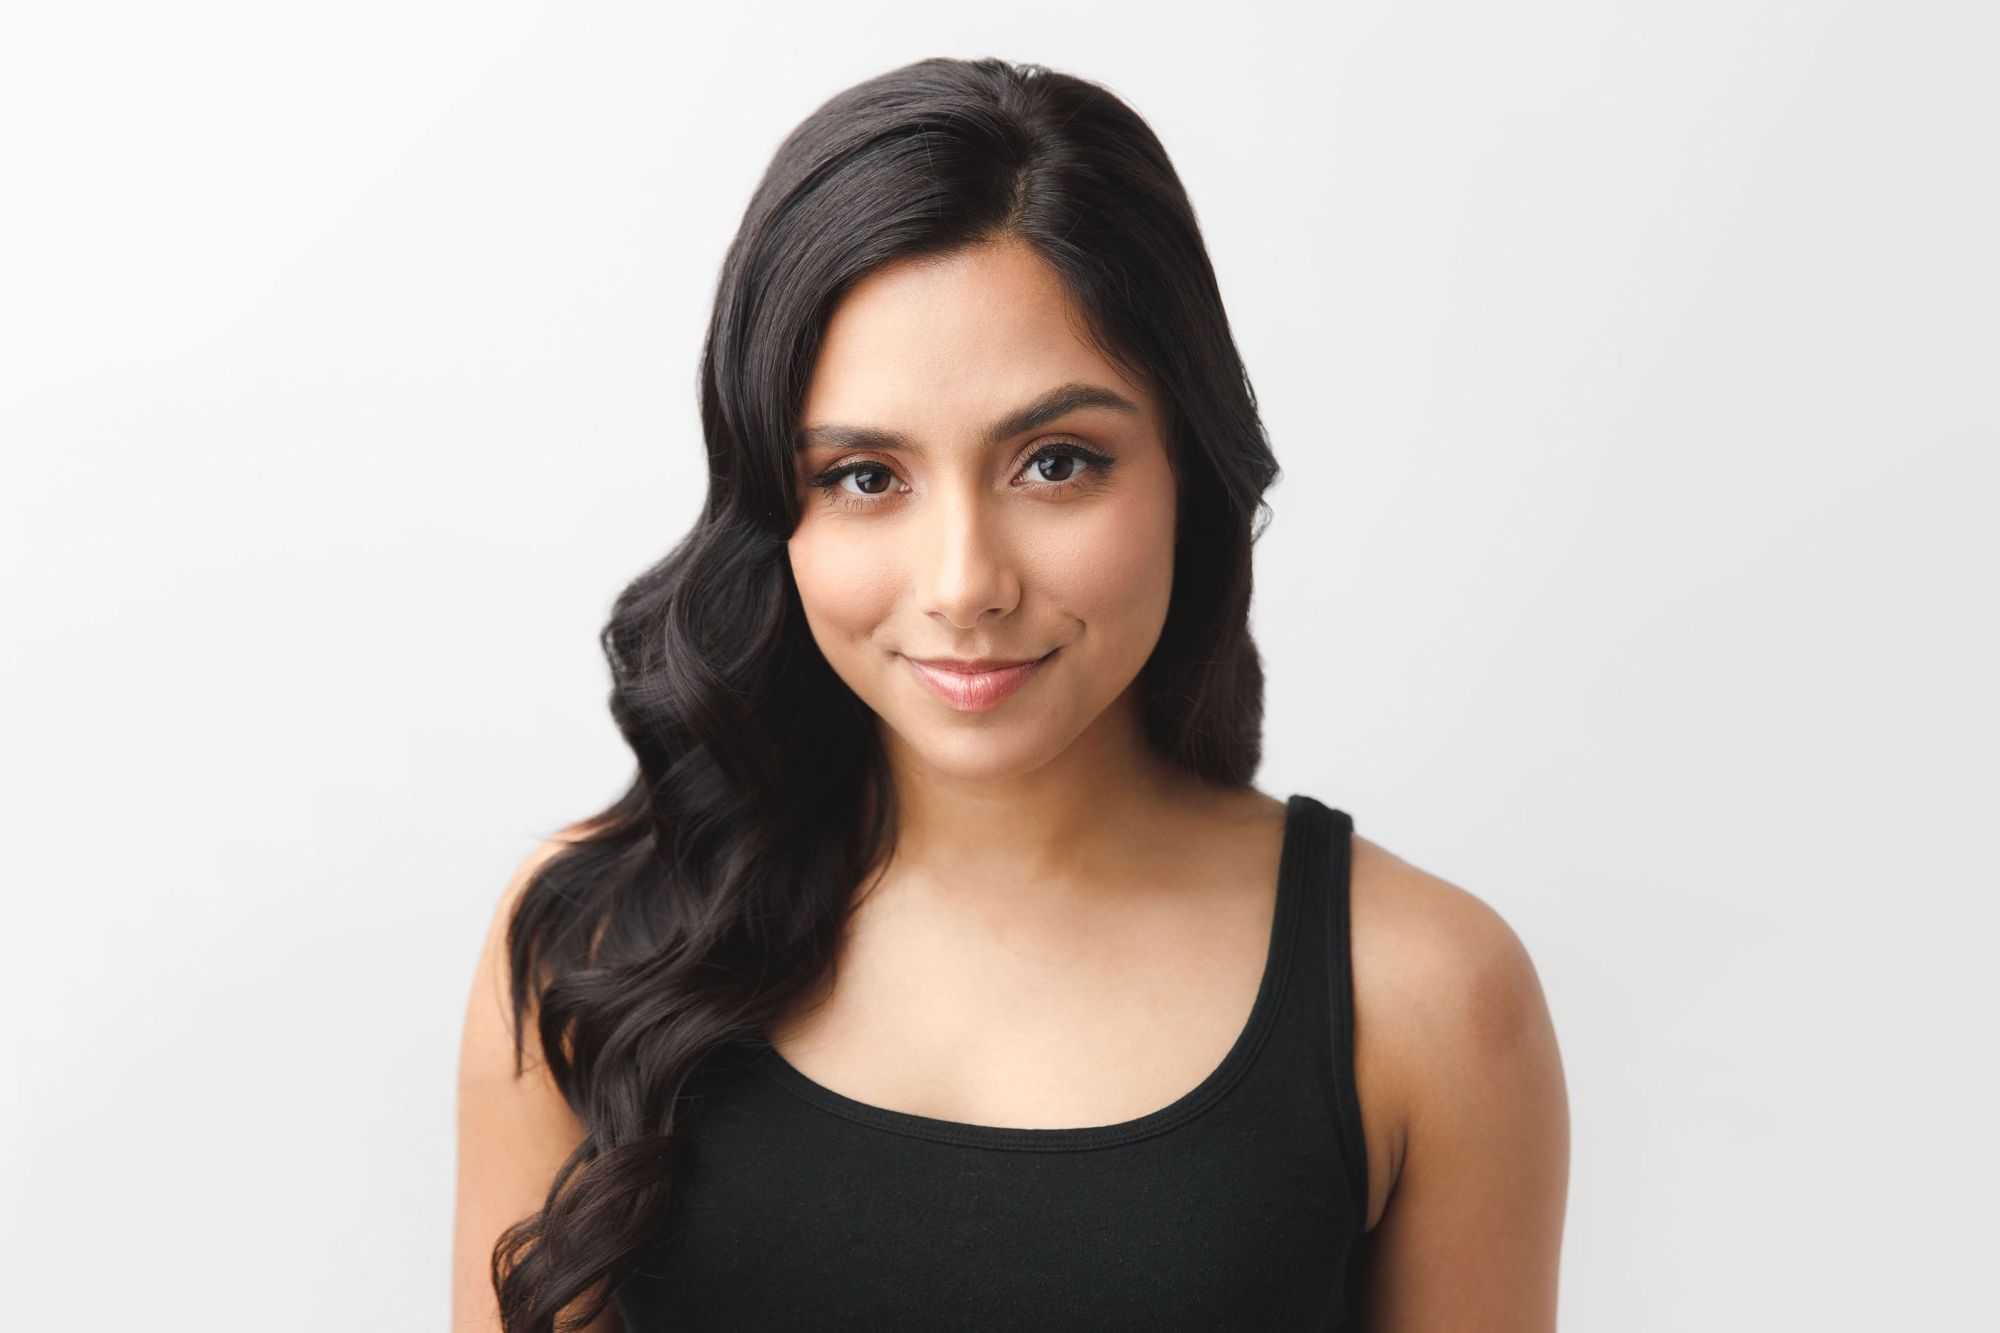 YouTuber Michelle Khare Trained Like a Marine and Walked Like a Runway Model and Got Over 1 Million Followers in the Process. Here's How She Makes Money Online.